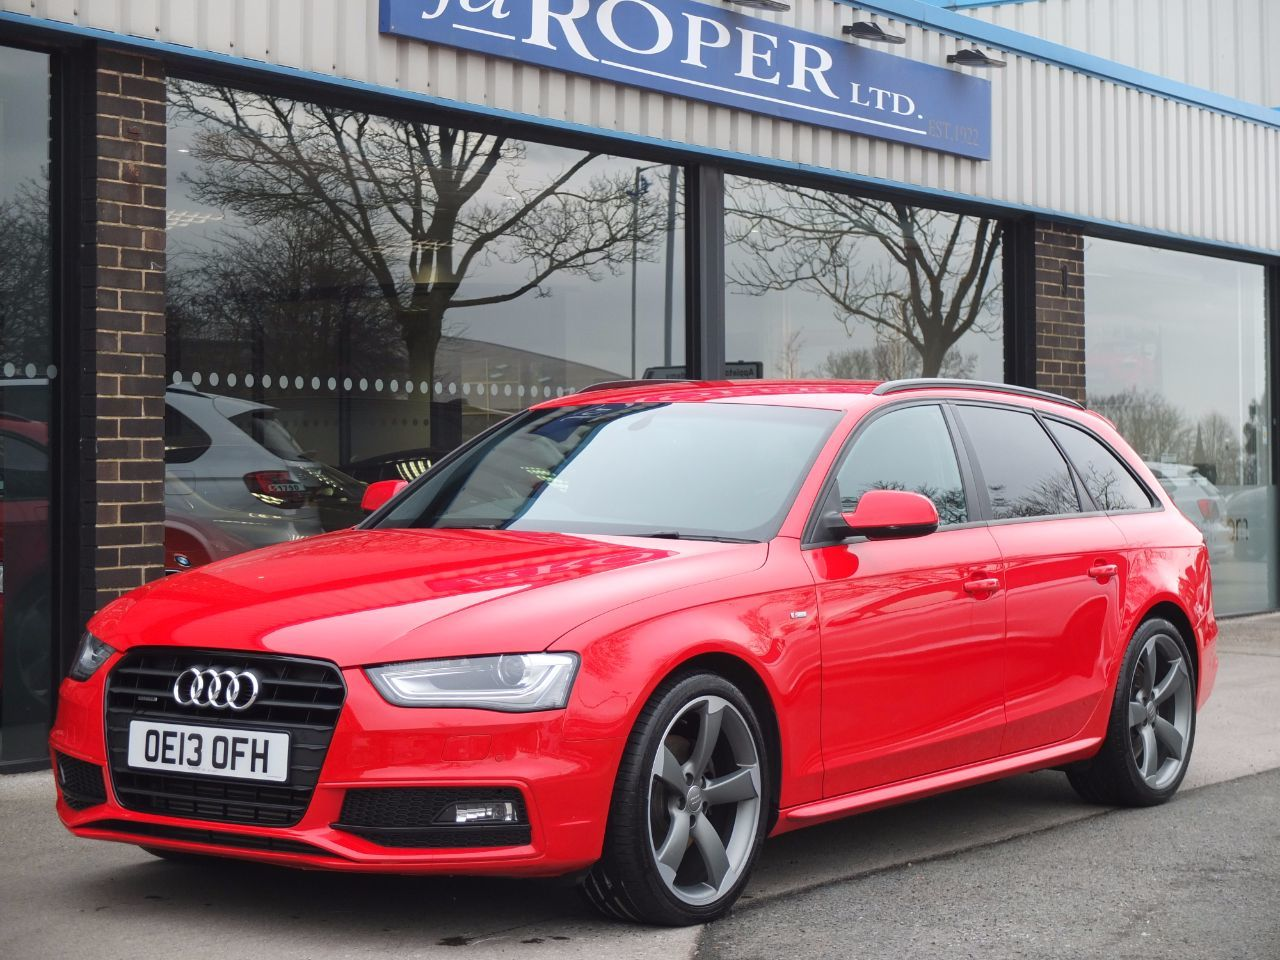 Audi A4 Avant 2.0 TDI 177ps quattro Black Edition Estate Diesel Misano Red PearlAudi A4 Avant 2.0 TDI 177ps quattro Black Edition Estate Diesel Misano Red Pearl at fa Roper Ltd Bradford